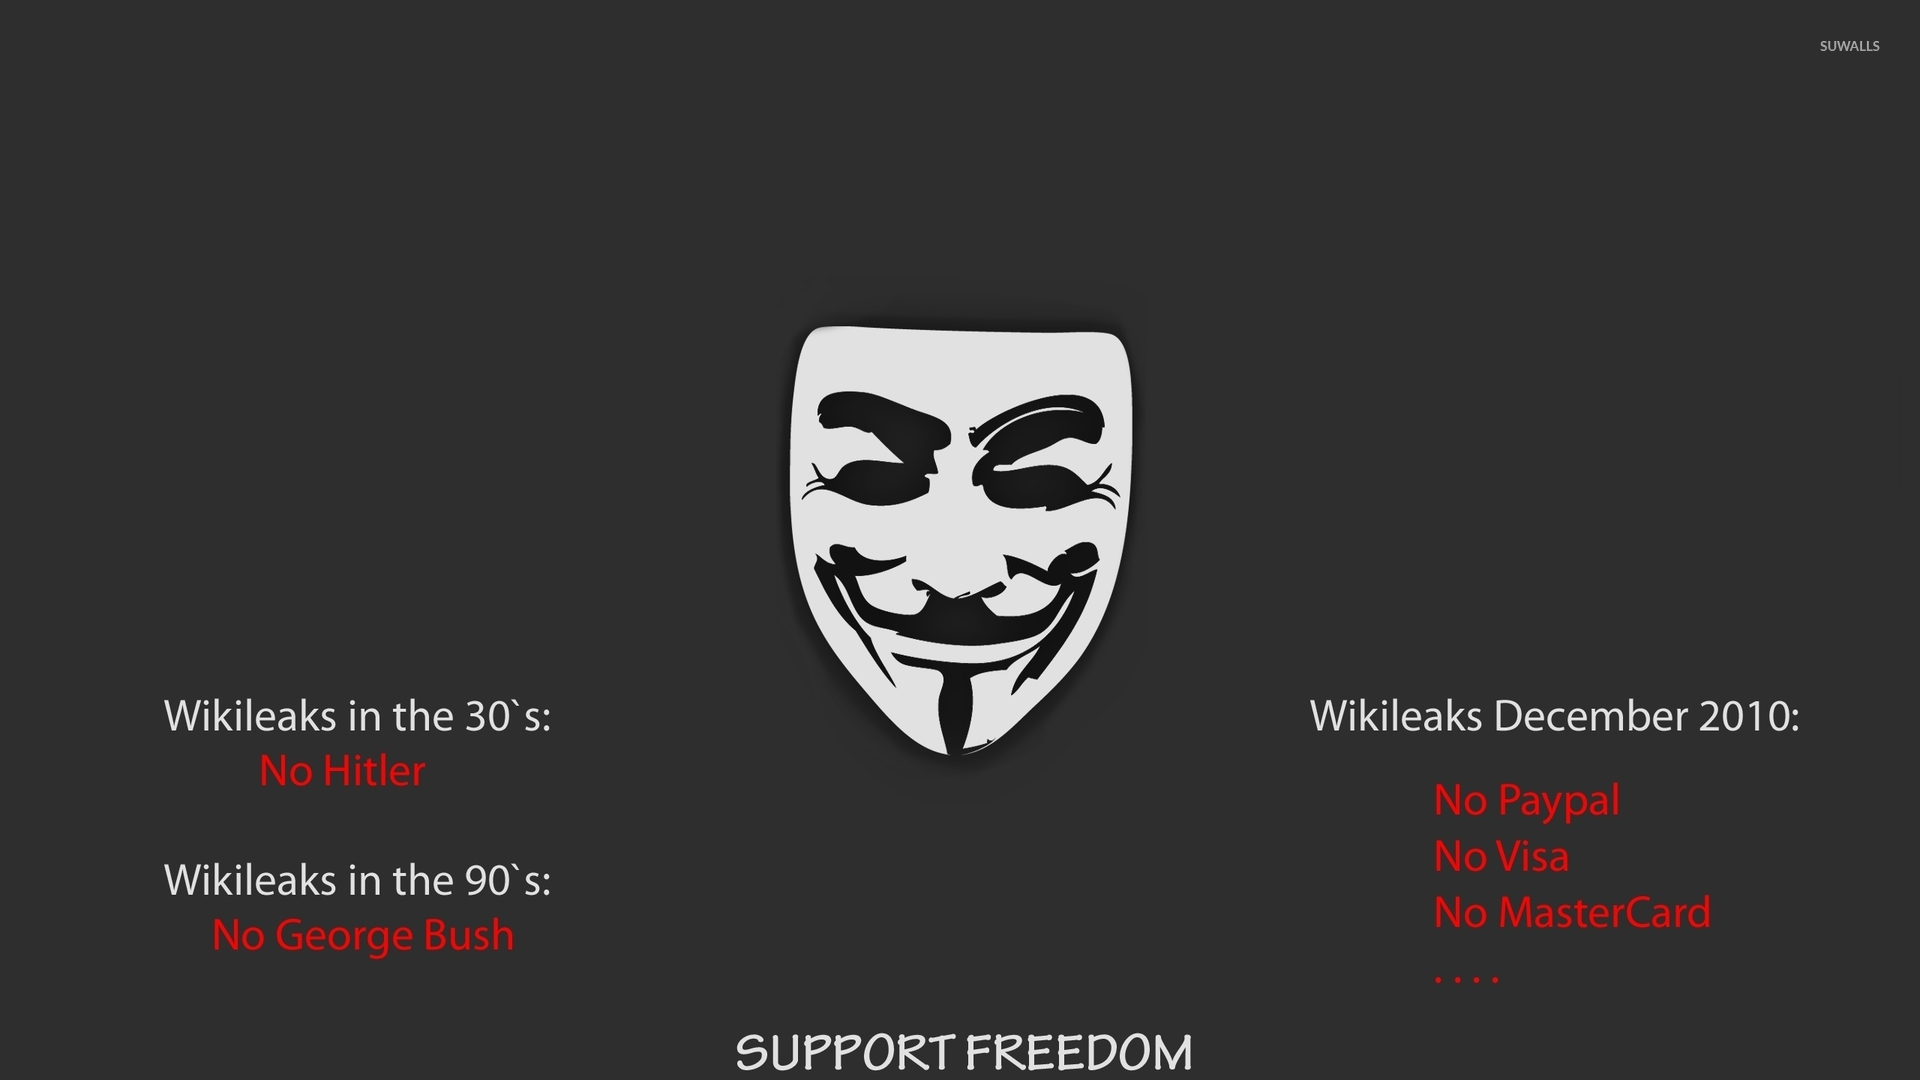 support freedom wallpaper meme wallpapers 43110